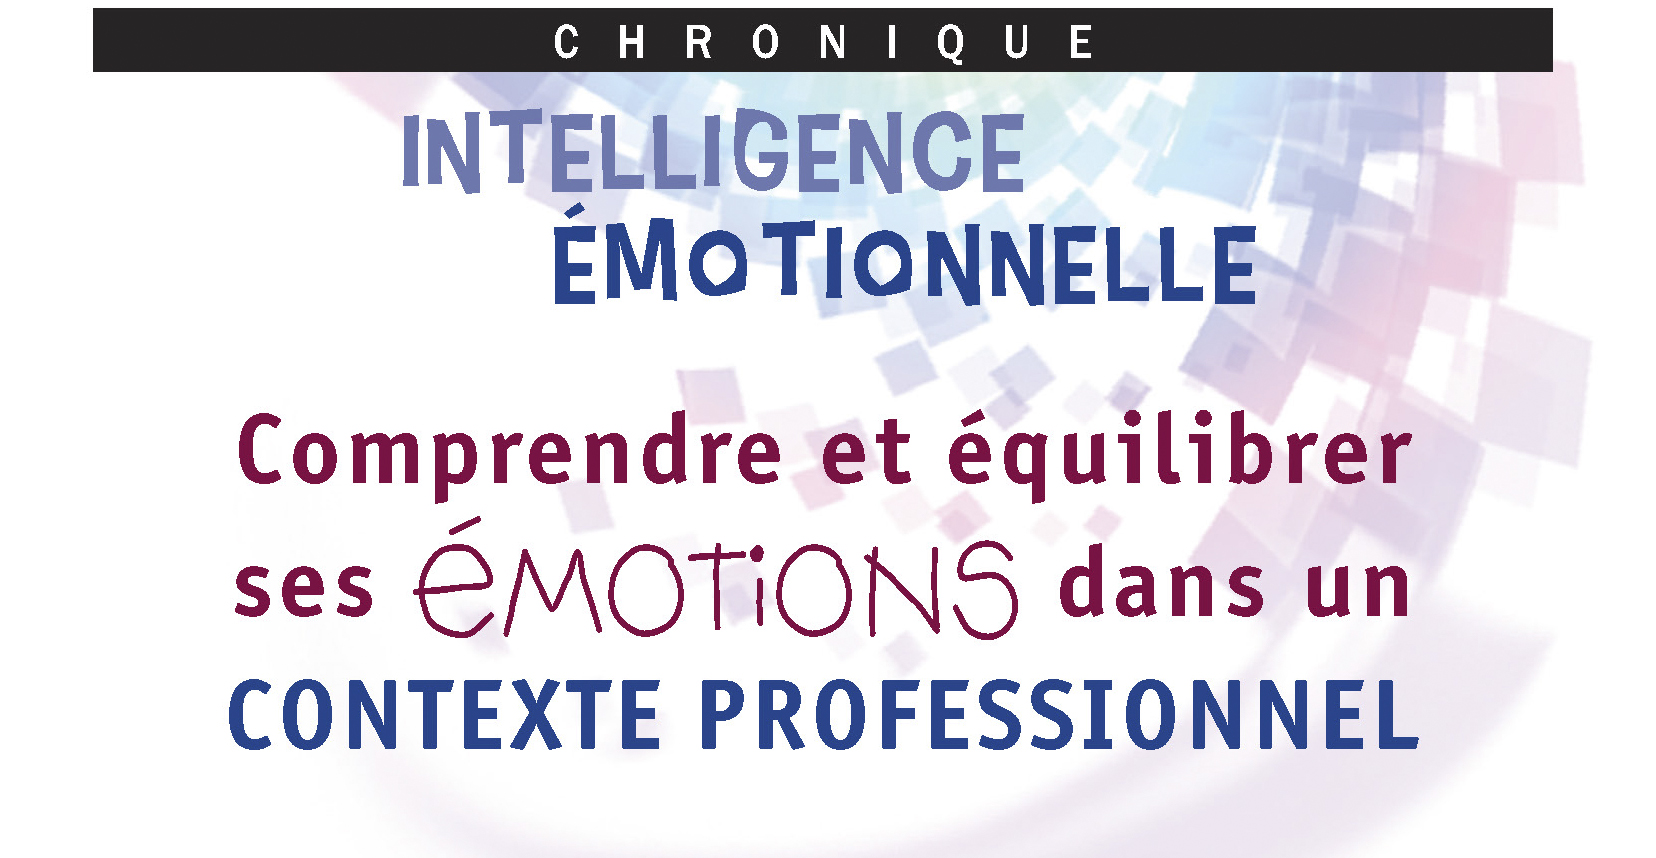 ppno48 intelligence émotionnelle comprendre équilibrer ses emotions